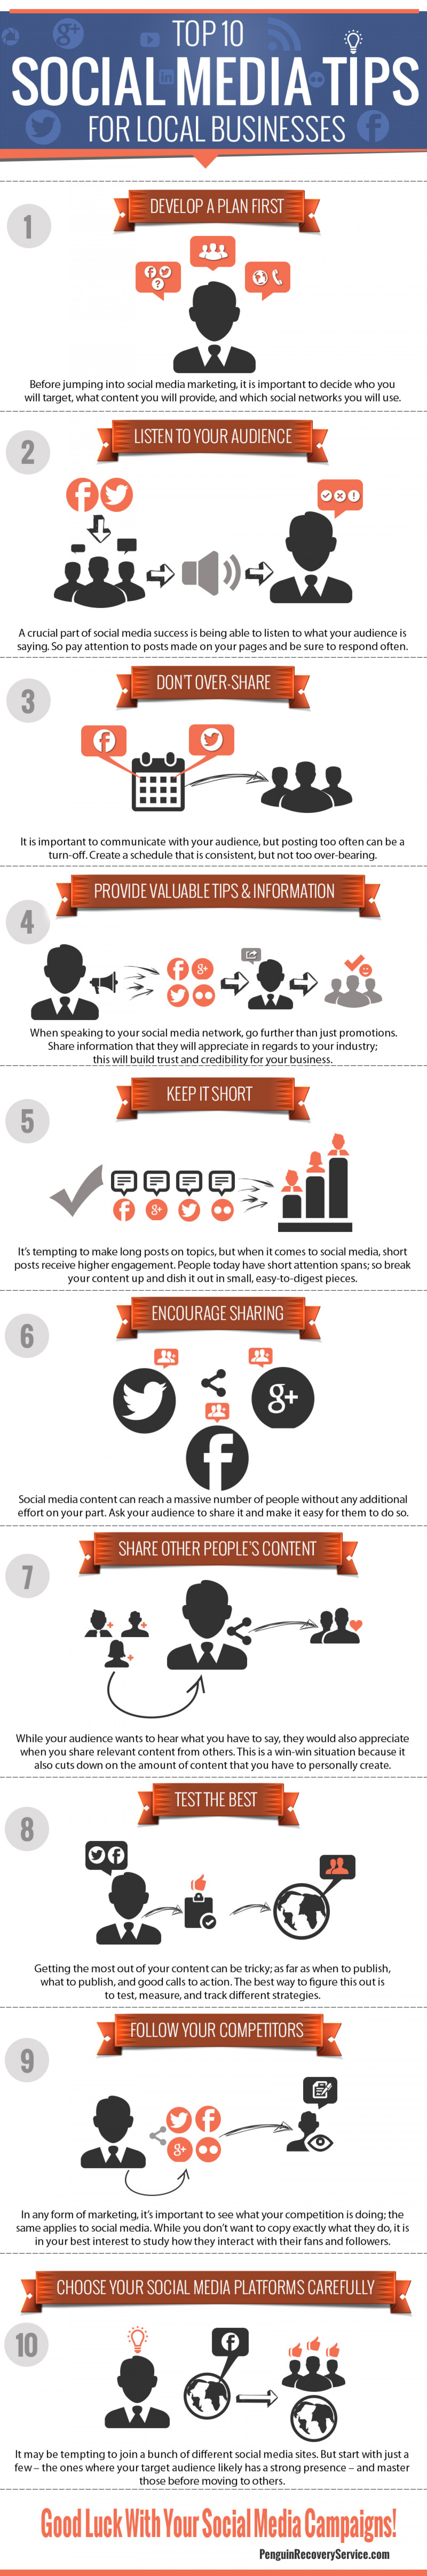 Top 10 Social Media Tips For Local Business Infographic